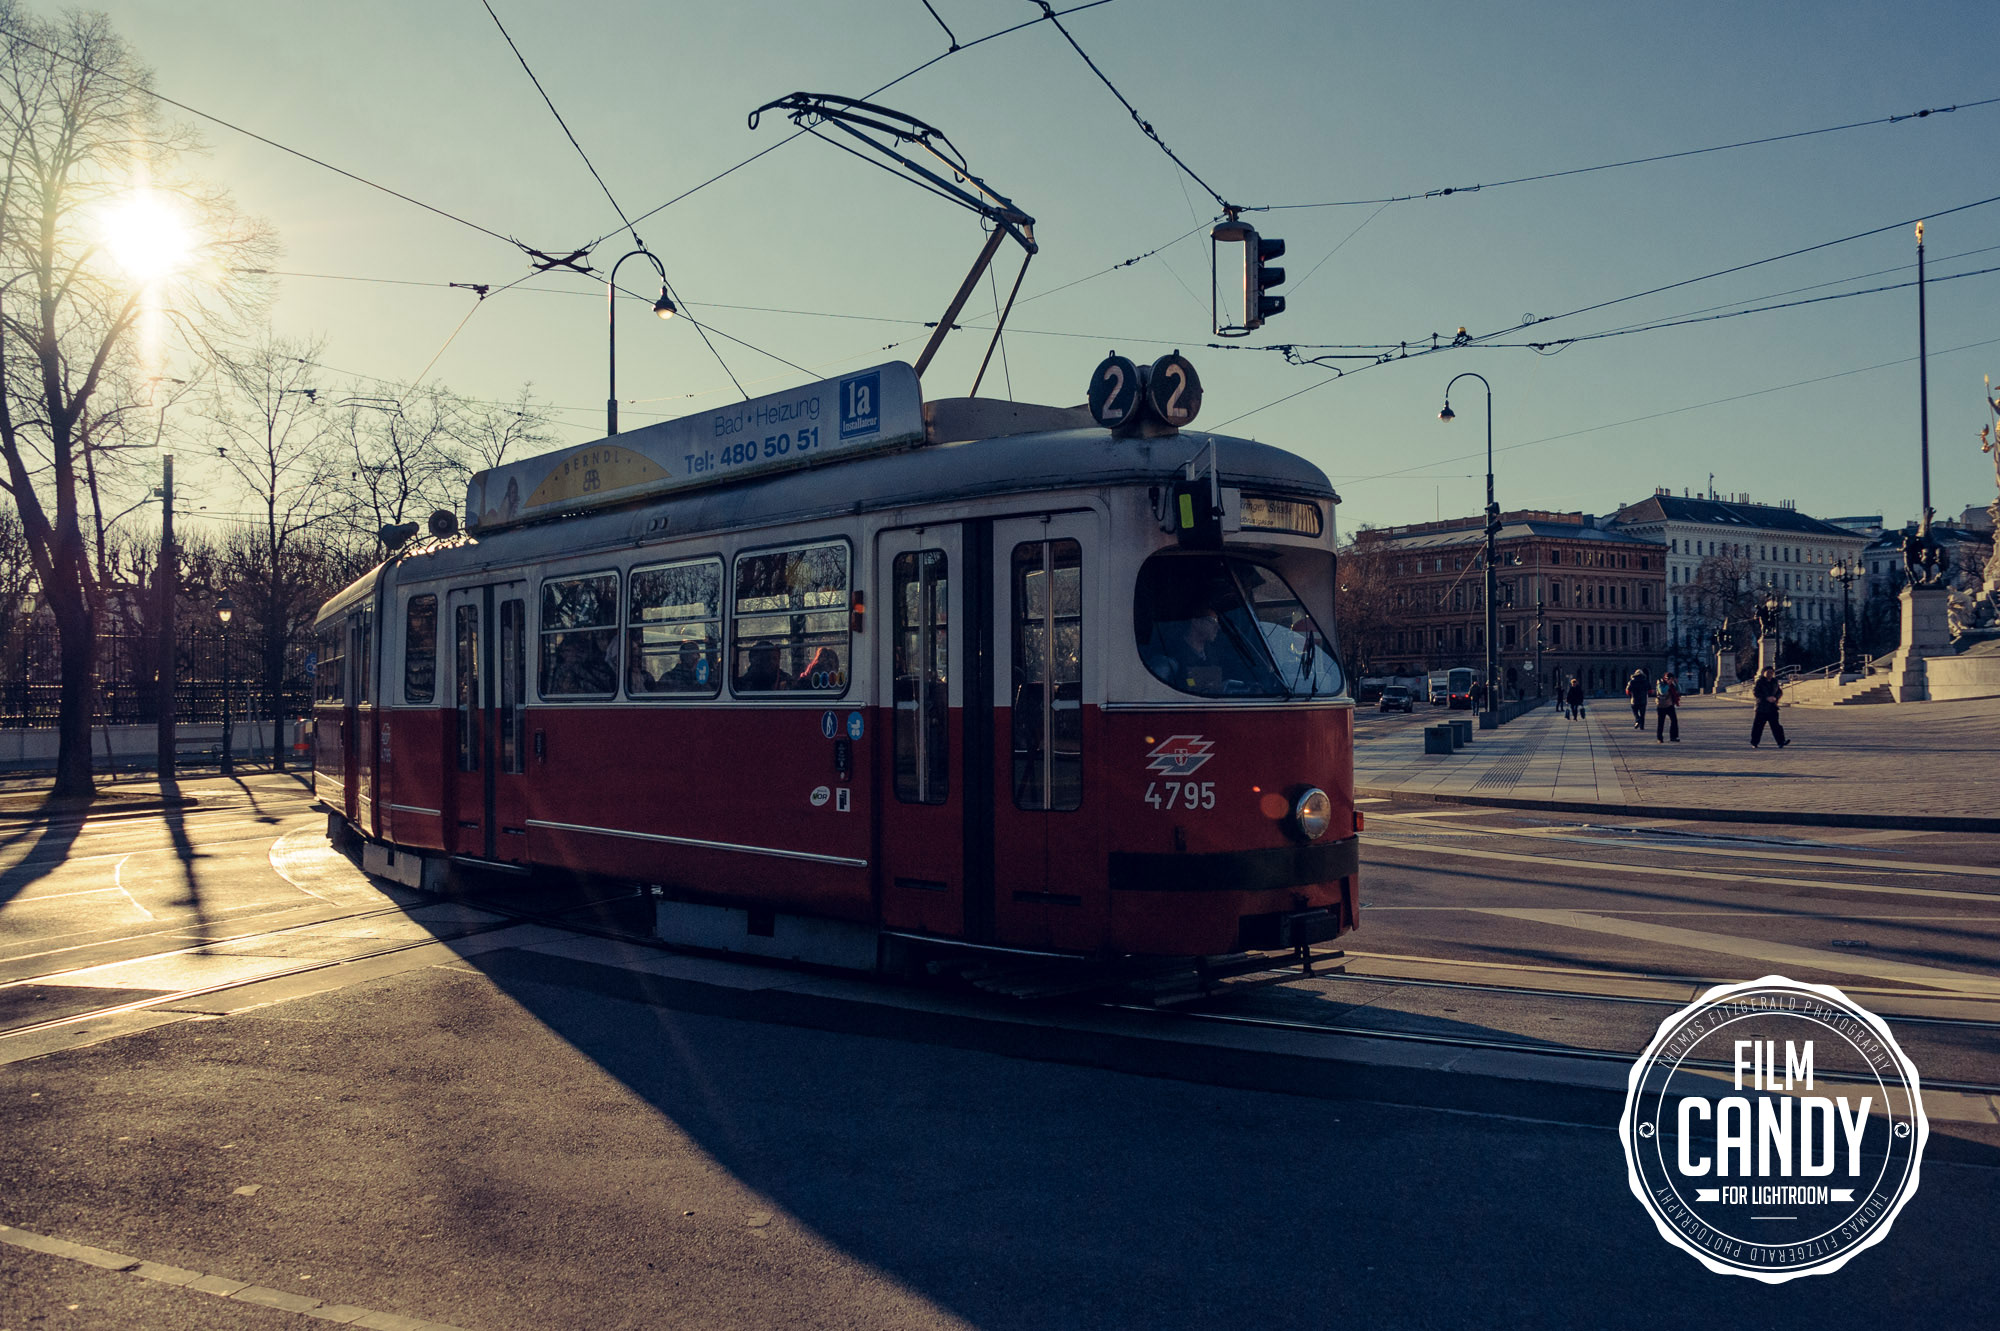 Vienna Tram - Processed with a beta version of Film Candy Develop Module Lightroom Presets